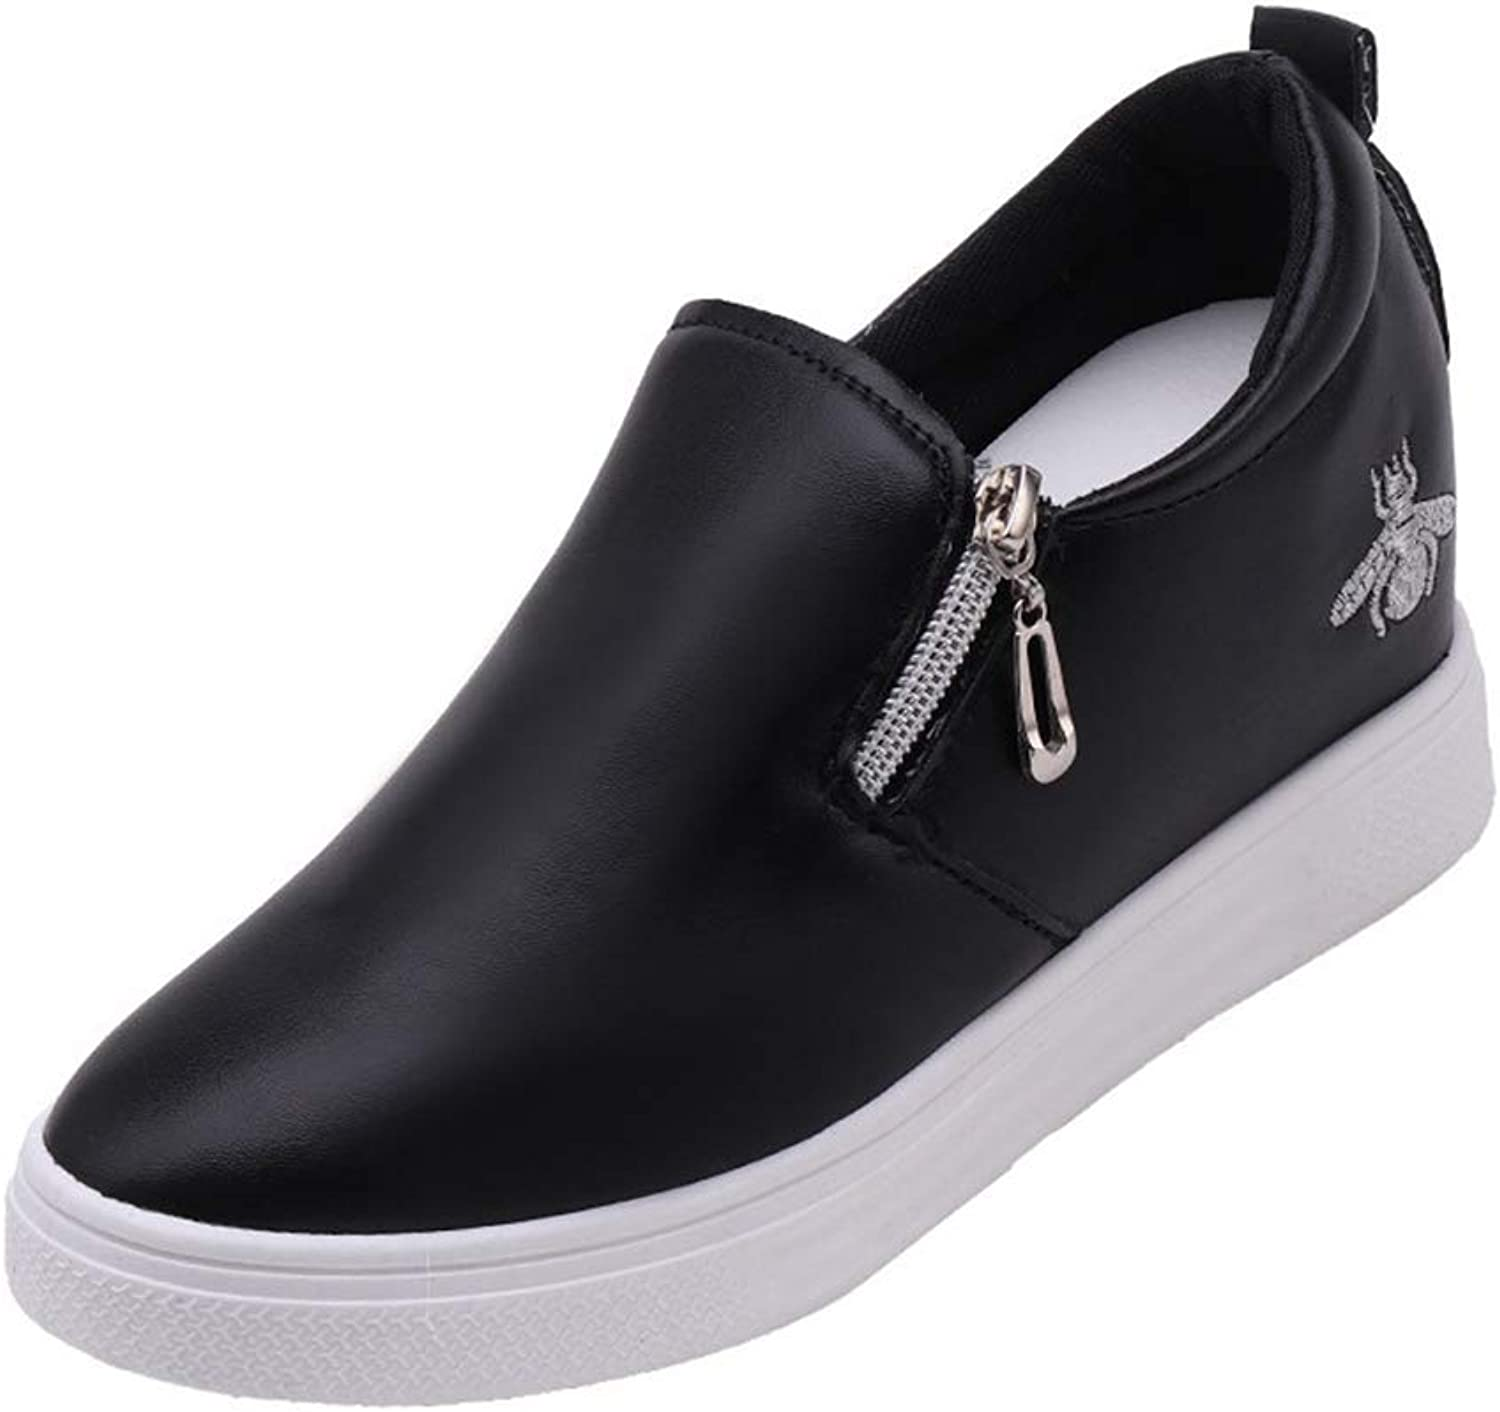 Gcanwea Women Fashion Bee Pattern Wedges Sneakers Spring Autumn Students Increasing shoes for Woman No Grinding Feet Elegant to Wear with Dress Smart to Wear with Jeans Black 5 M US shoes